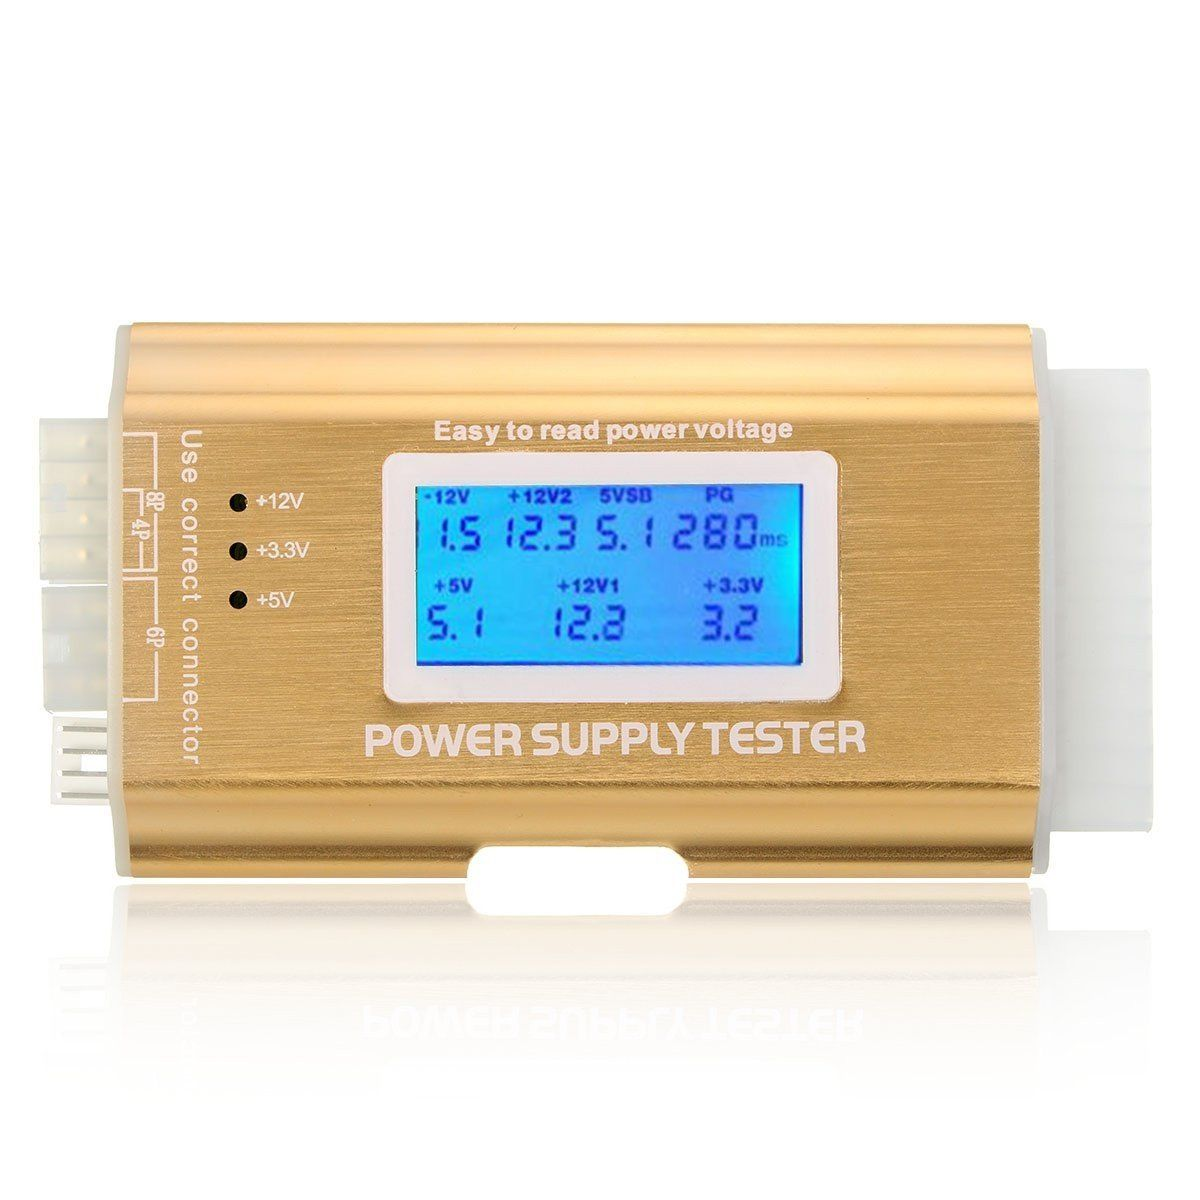 ATX BTX SODIAL ITX Power Supply Tester With LCD Display TM